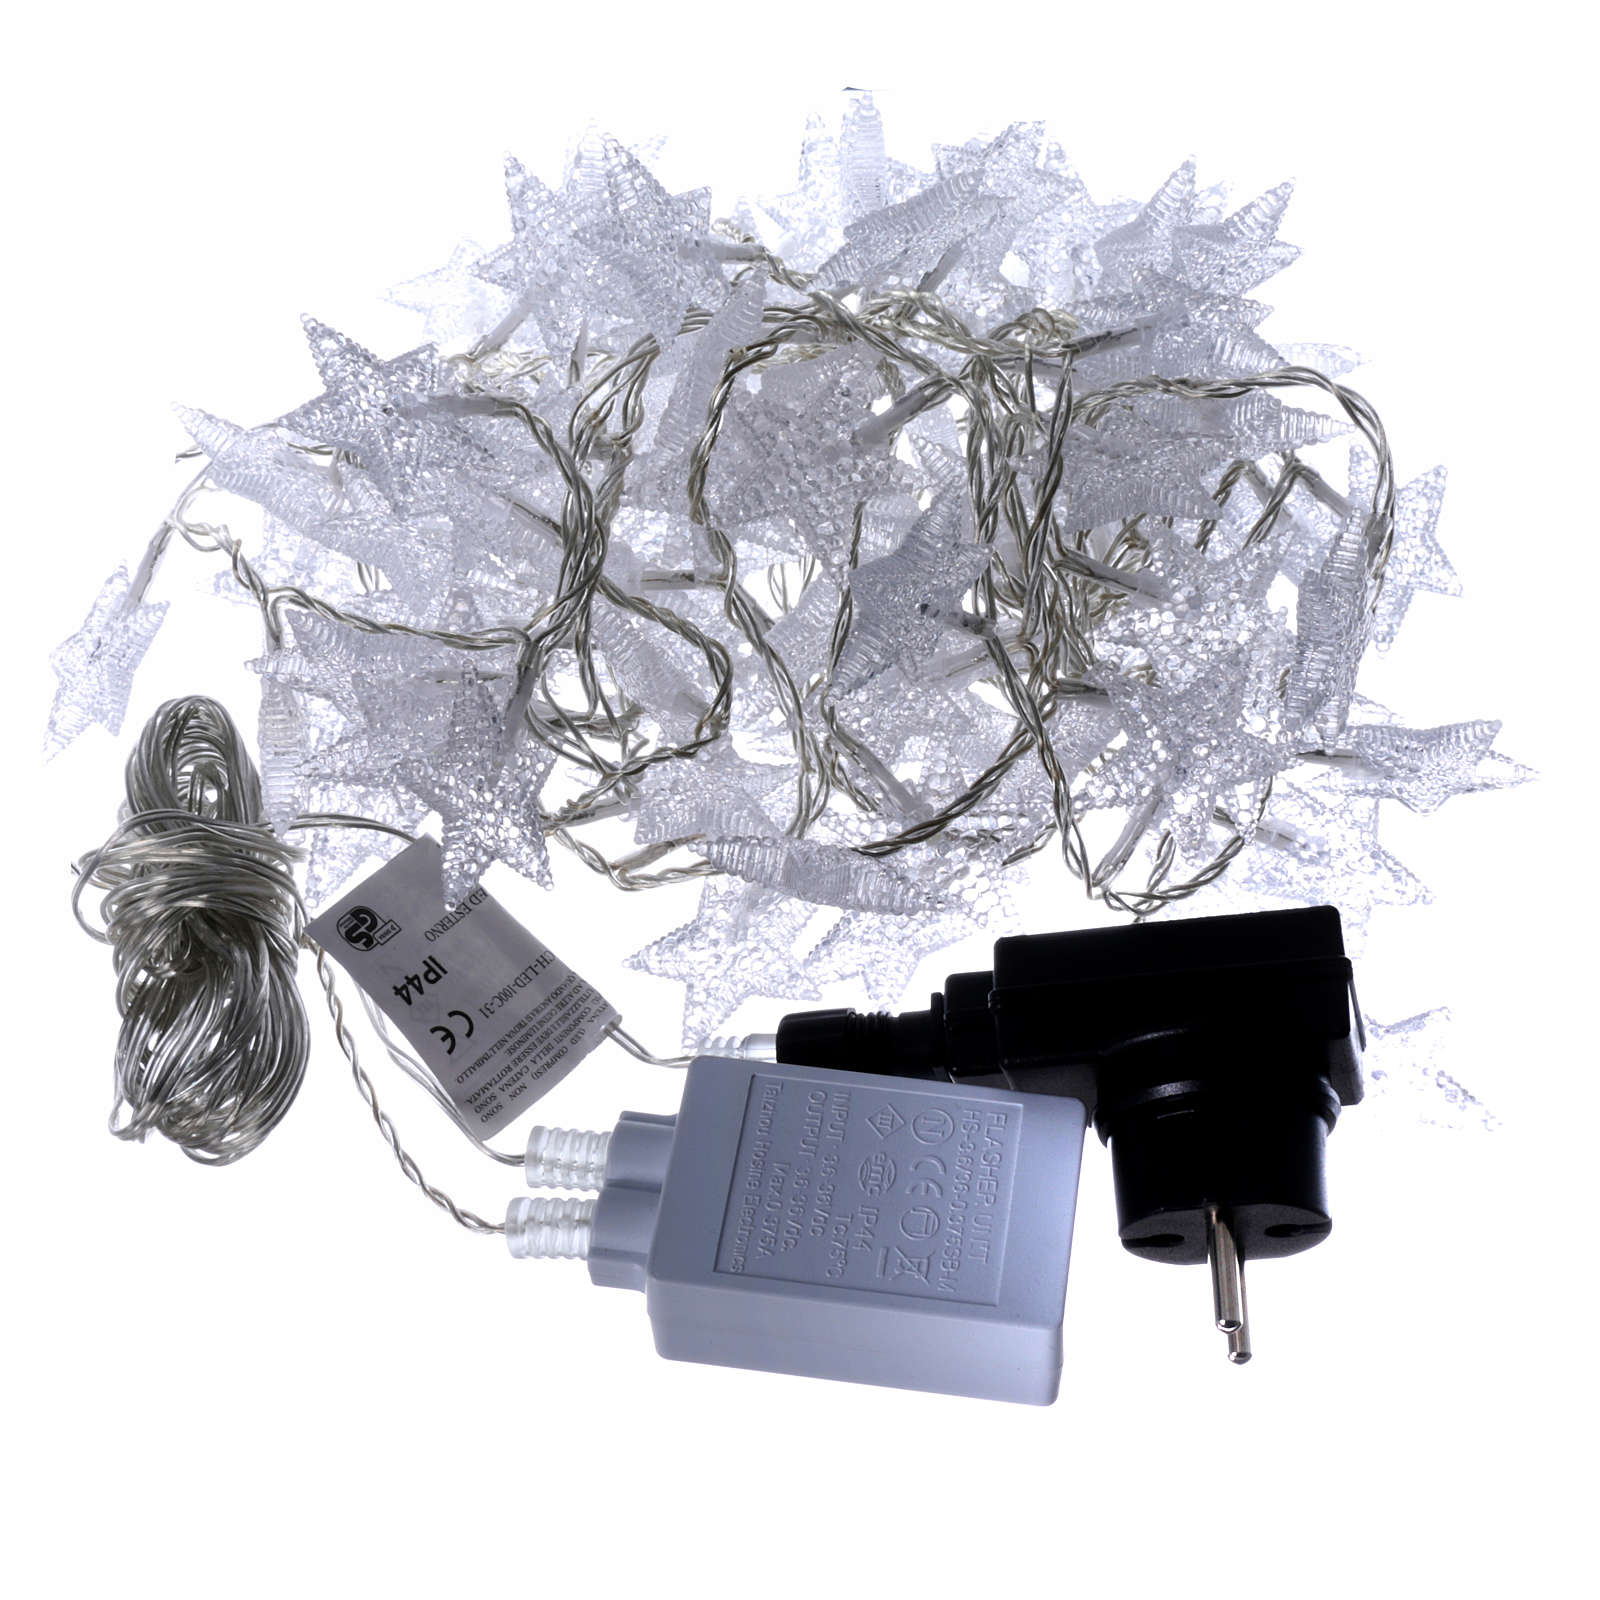 Star lights cable 100 leds ice white internal and external use 3